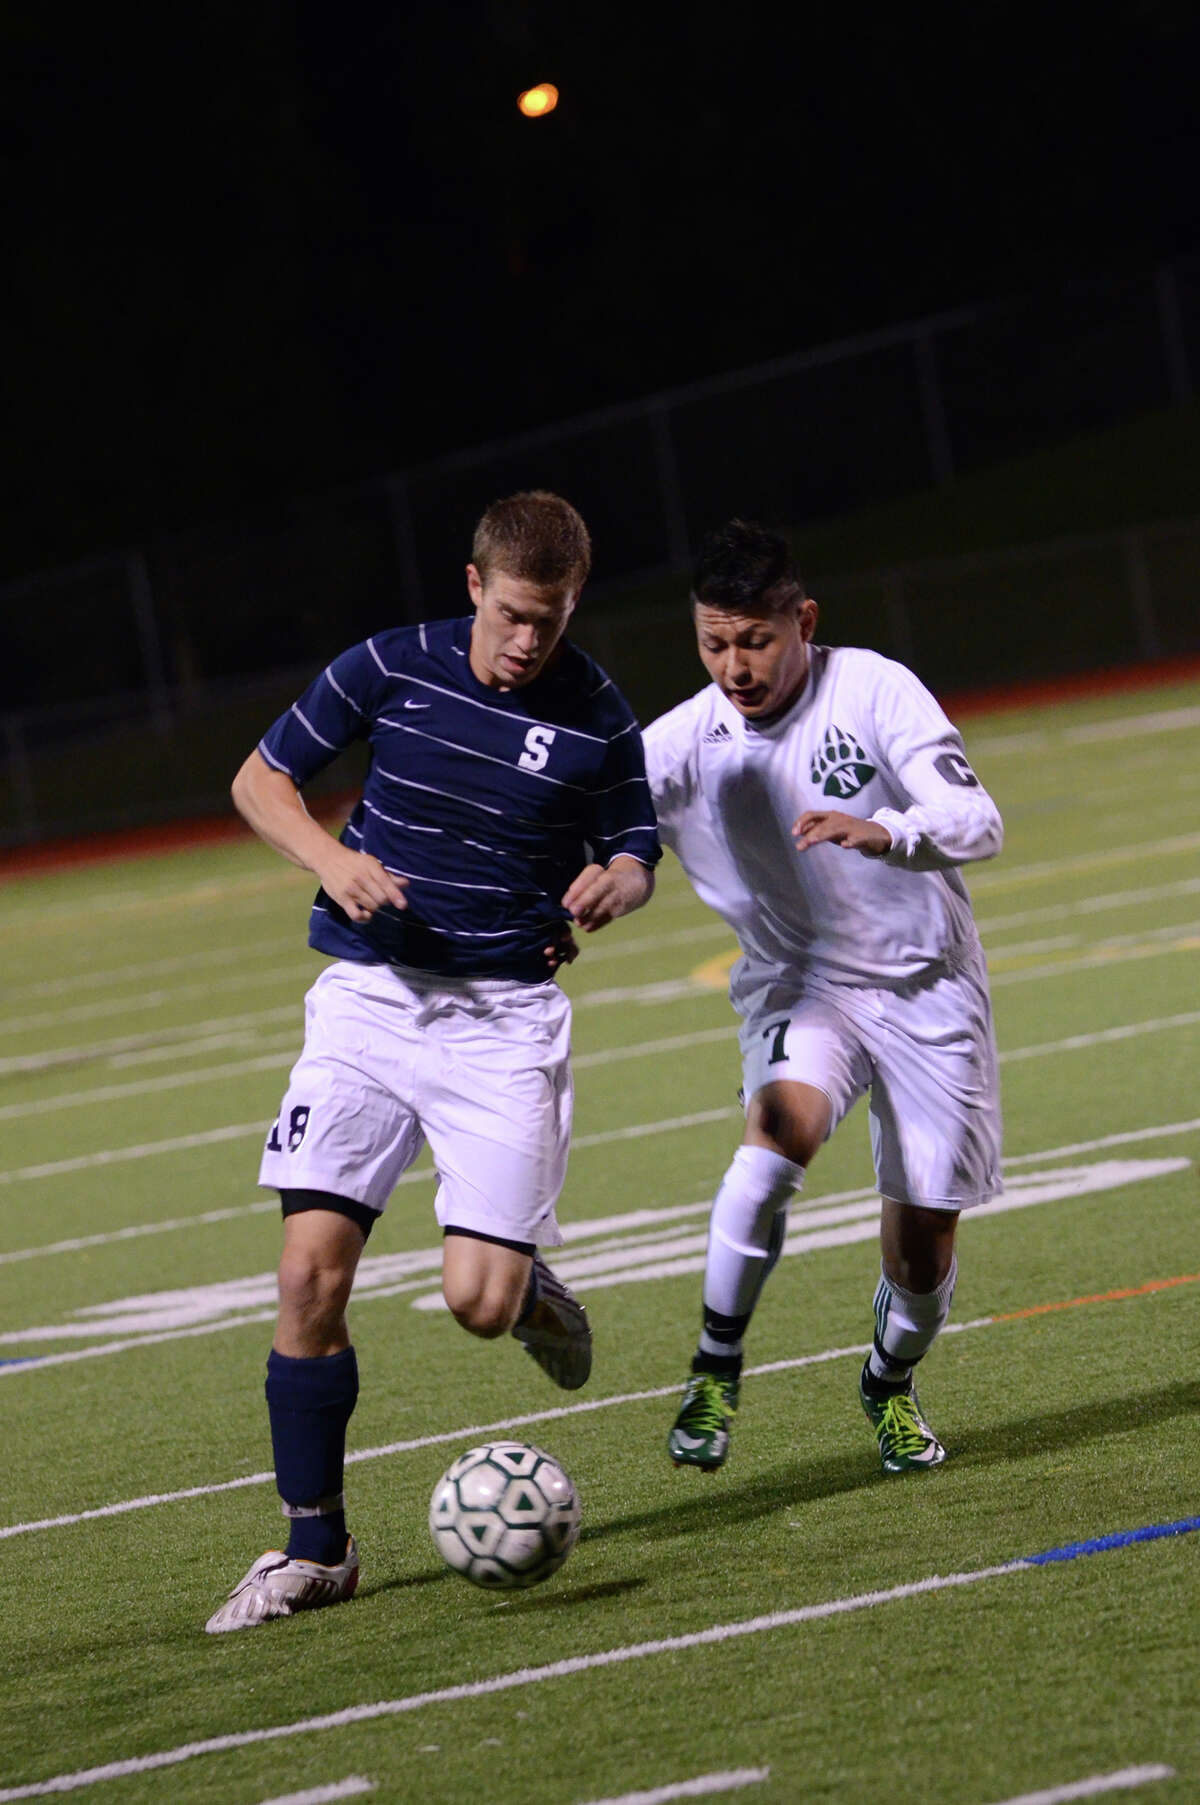 Staples' Ethan Bradeen (18) and Norwalk's Alejandro Rivera (7) battle for control of the ball during the boys soccer game at Norwalk High School's Testa Field on Monday, Oct. 1, 2012.